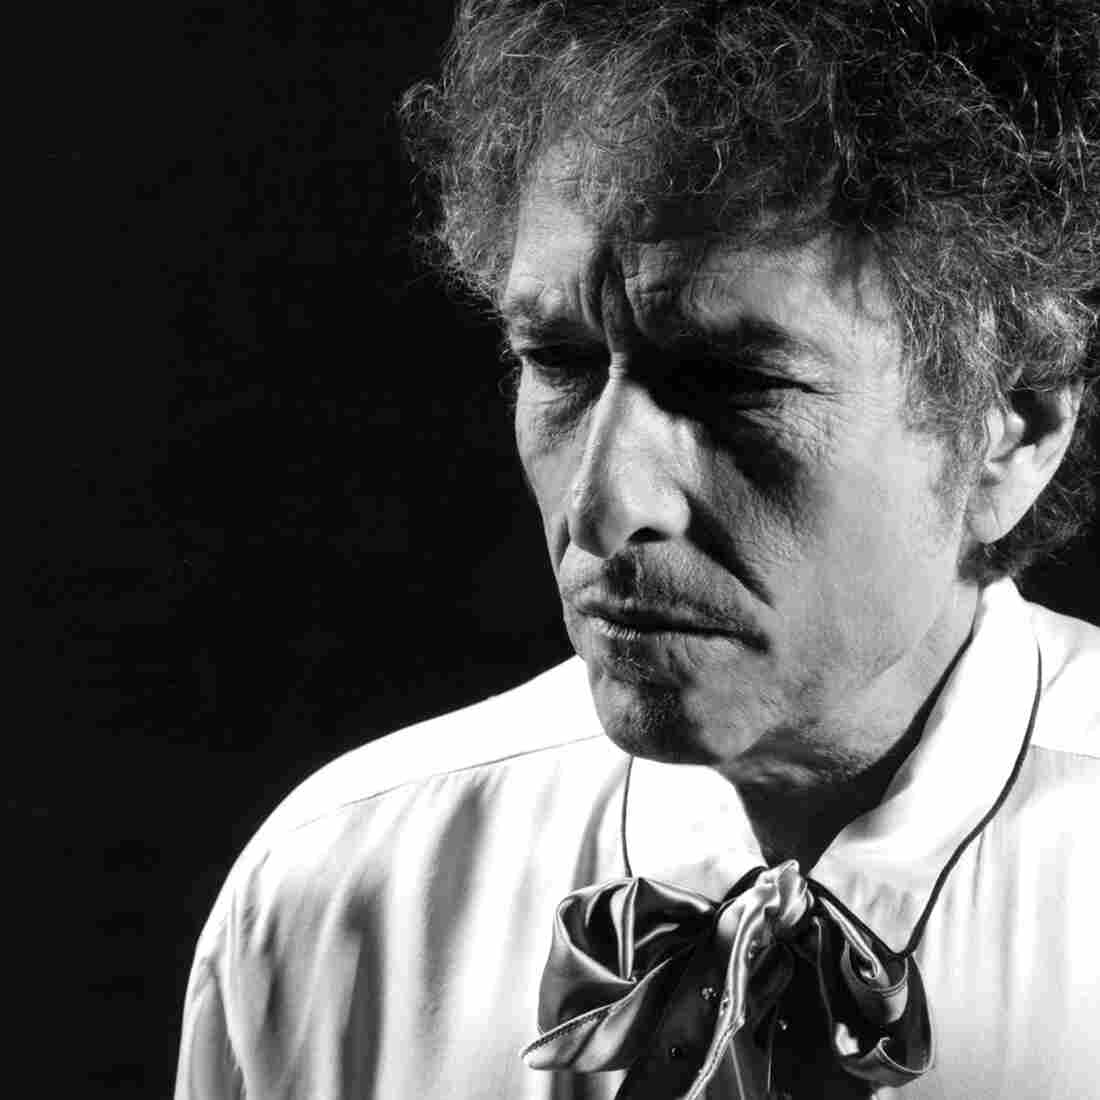 Bob Dylan's next album, Shadows In The Night, out on February 3, is a selection of songs made famous by Frank Sinatra.